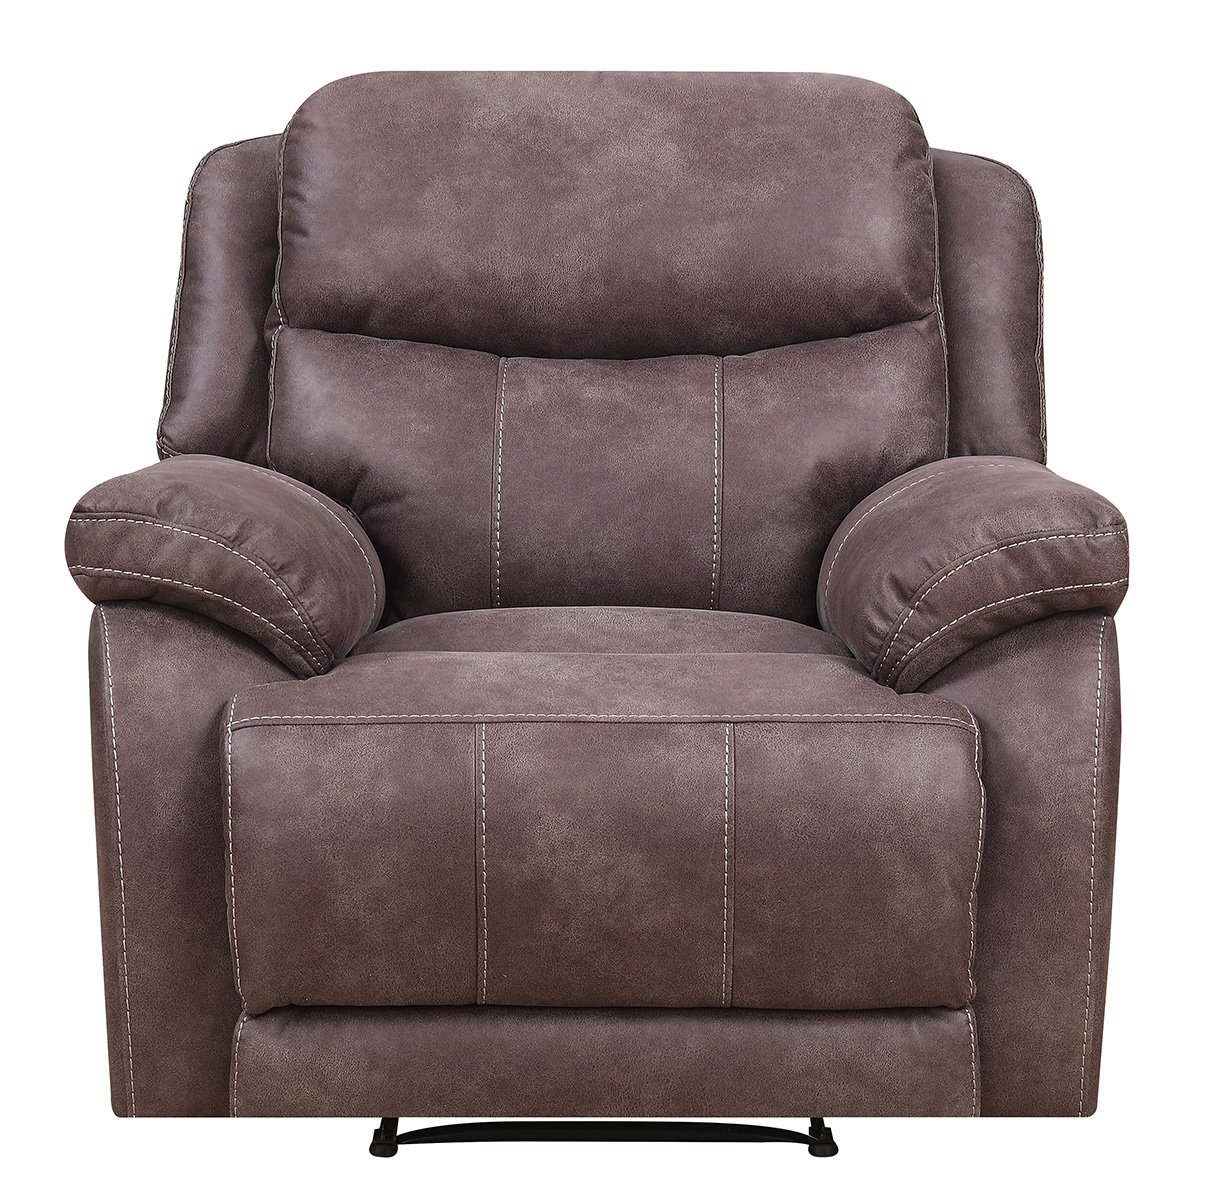 Mstar Hunter Lay Flat Power Recliner with Power Adjustable Headrest, USB Charging Port and Memory Foam Seat Topper